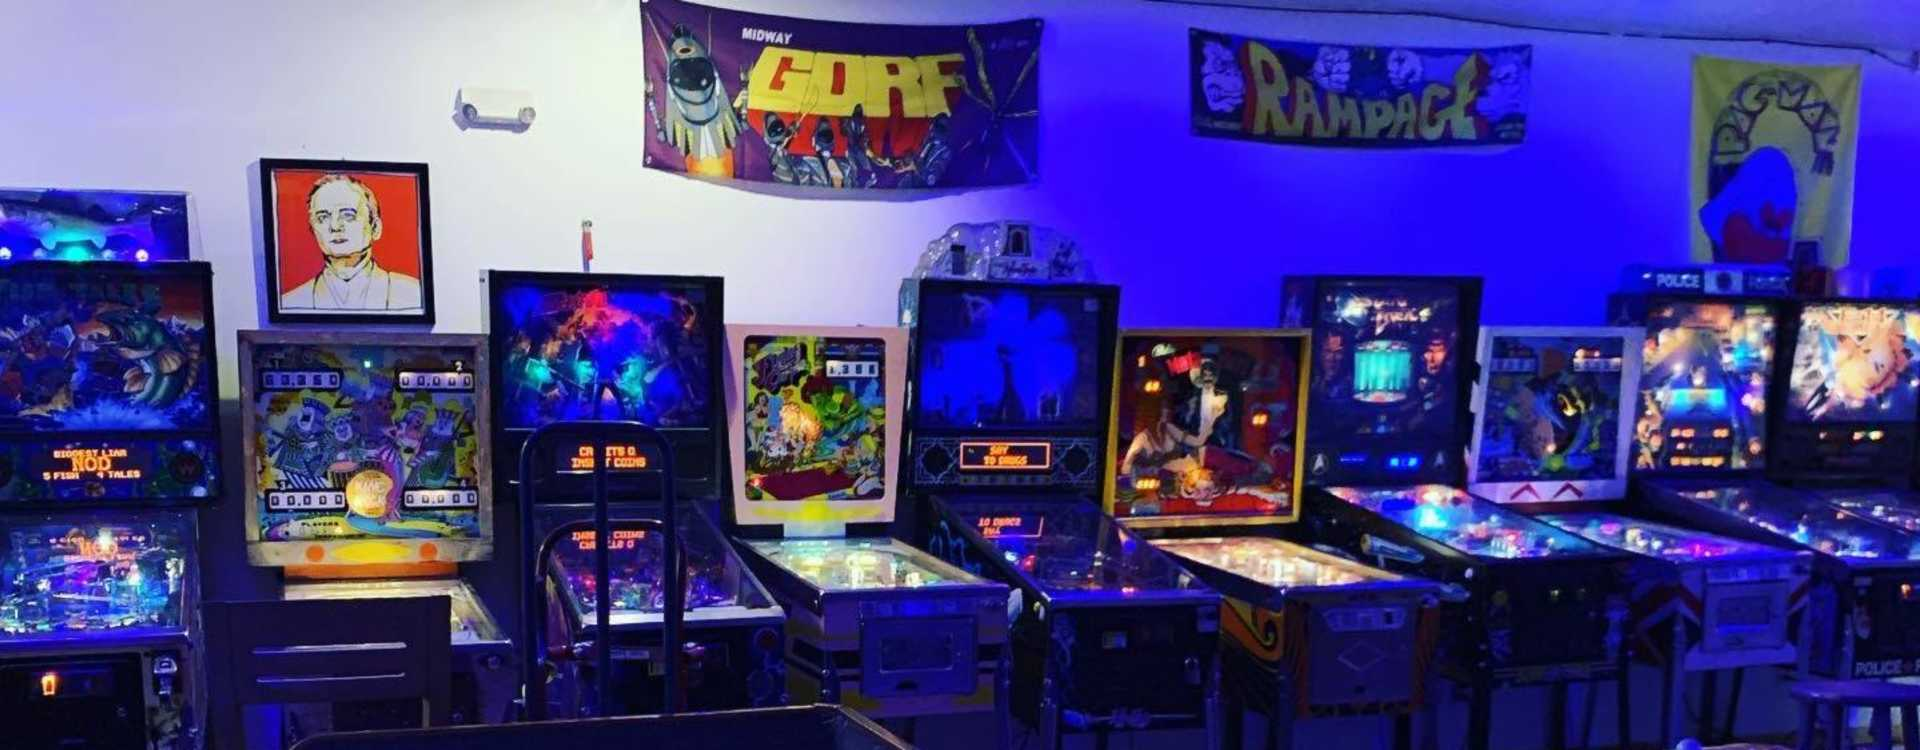 Waterland Arcade Pinball Machines